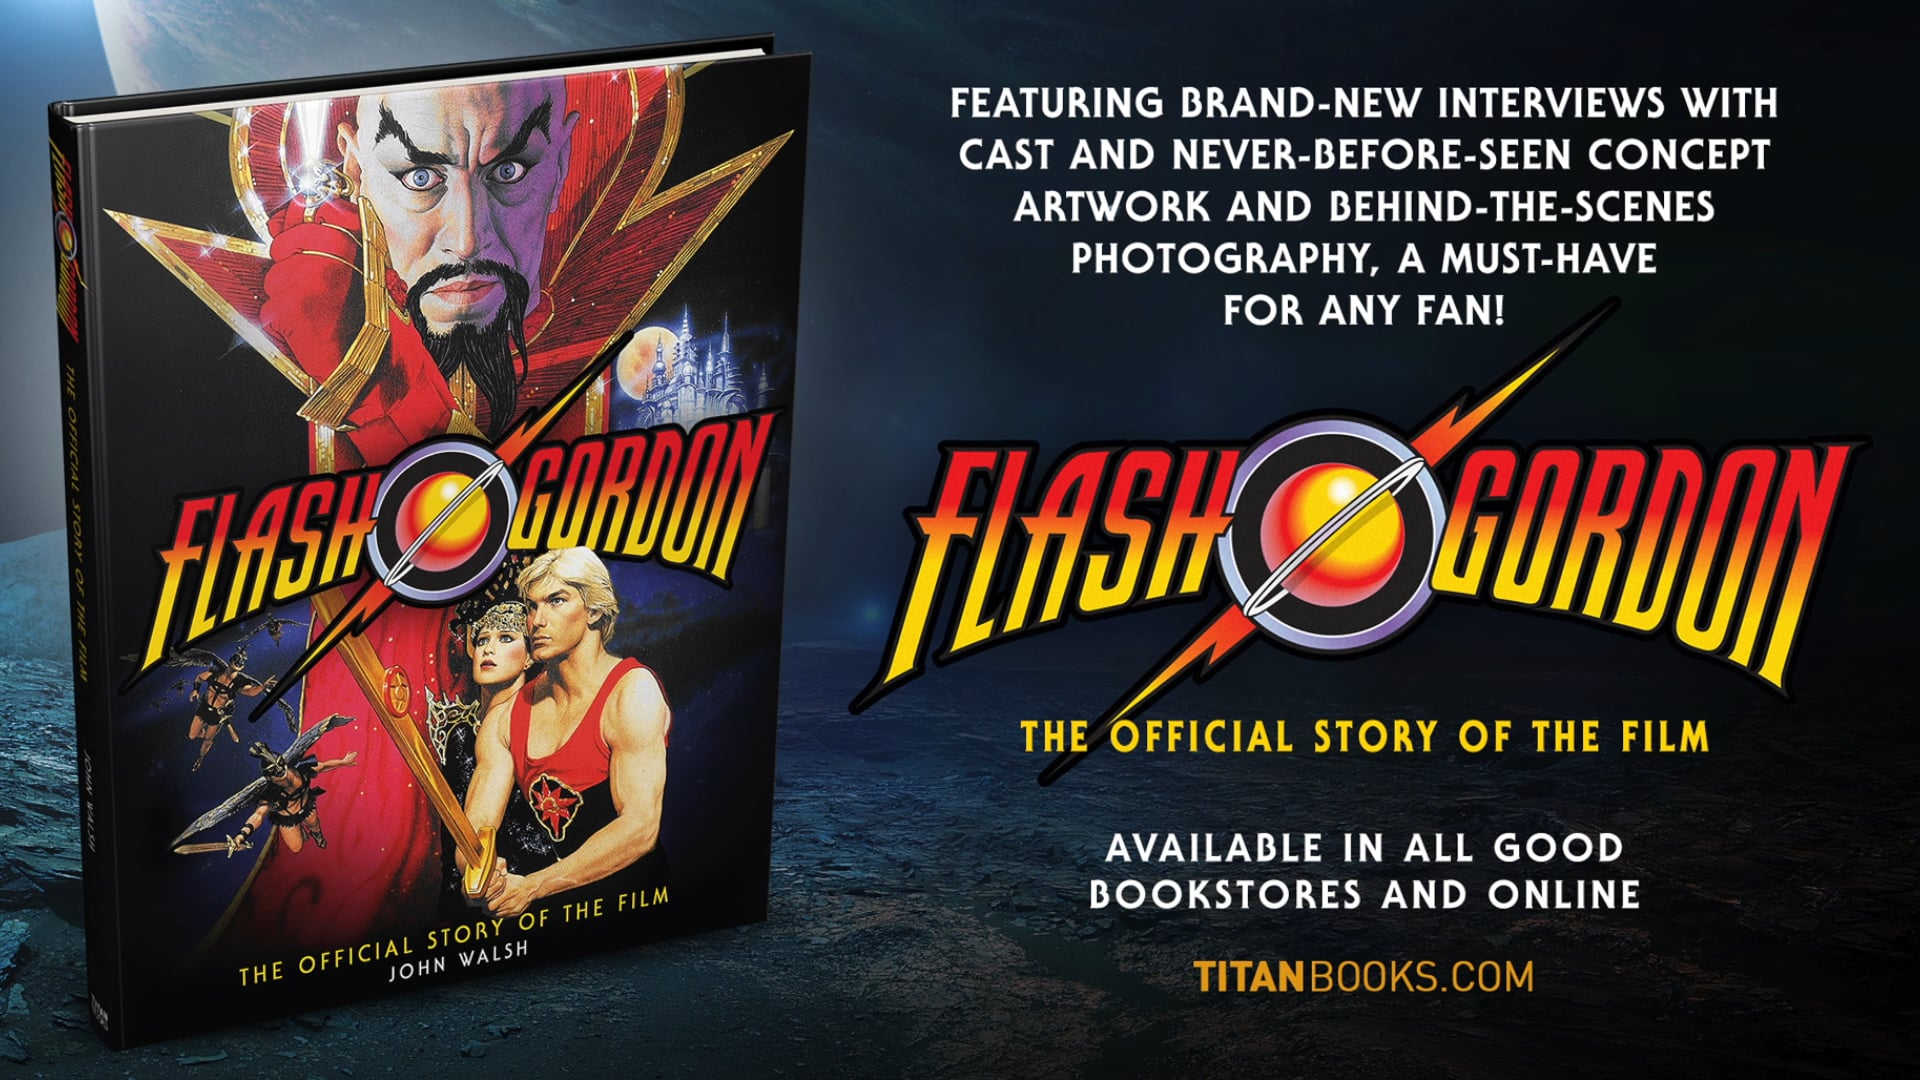 Flash Gordon The Official Story of the Film (Official Trailer)